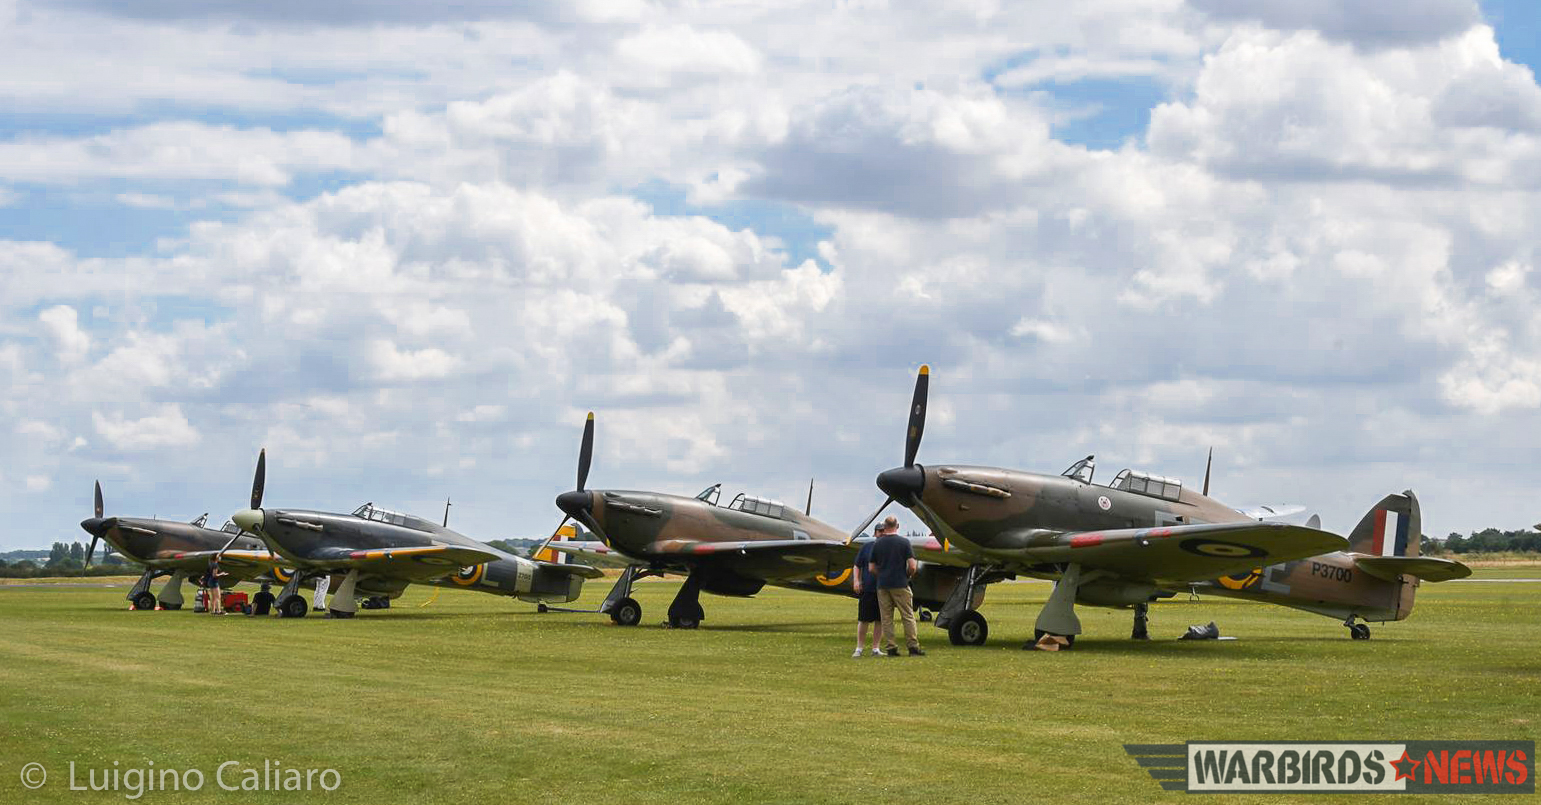 Four of the five Hawker Hurricanes which took part in the display! (photo by Luigino Caliaro)